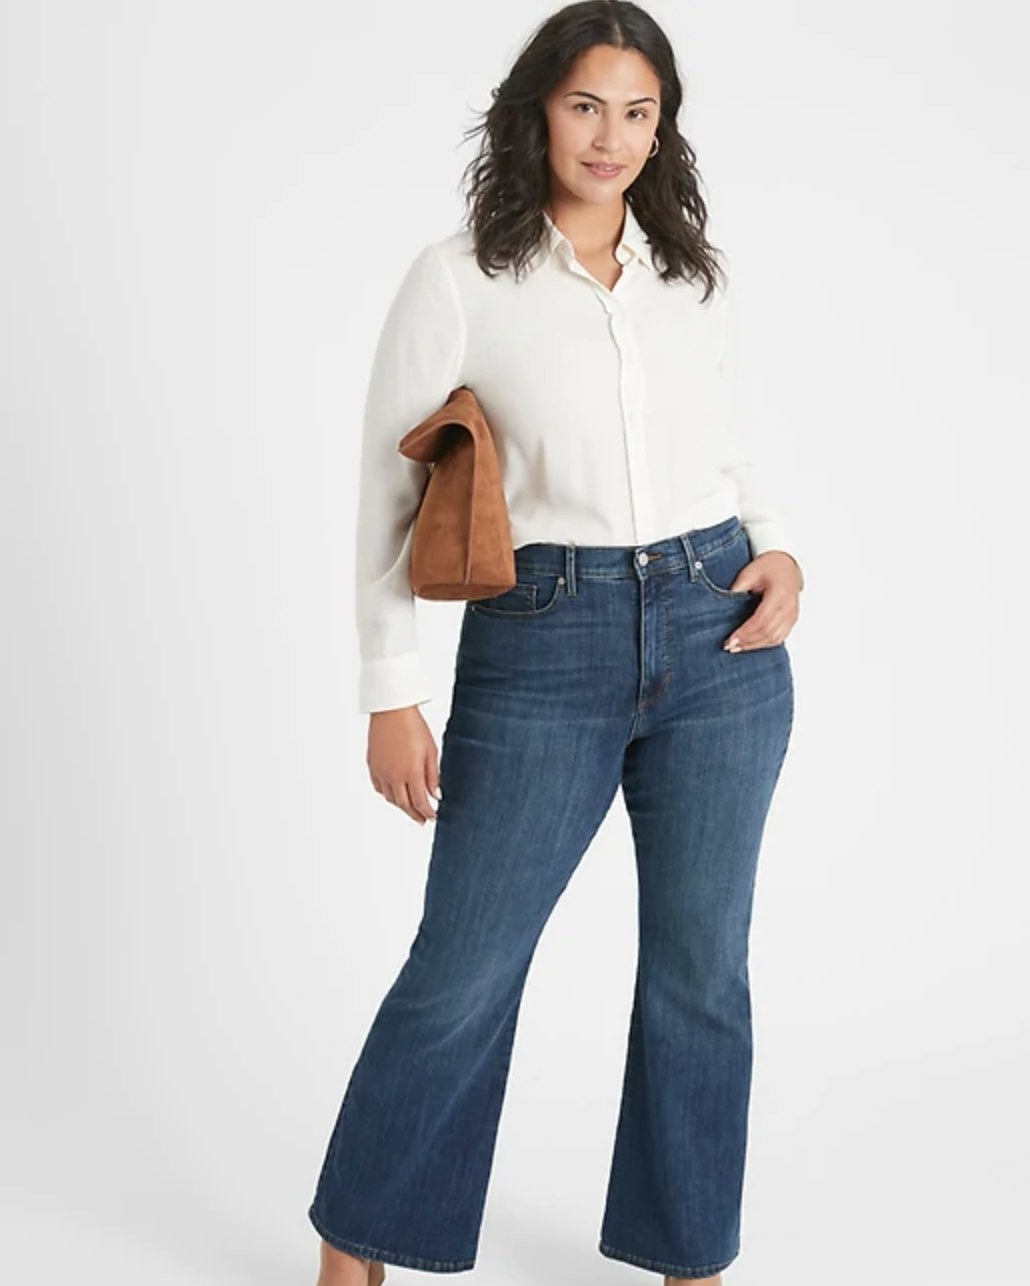 The curvy high-rise flare jeans in dark wash